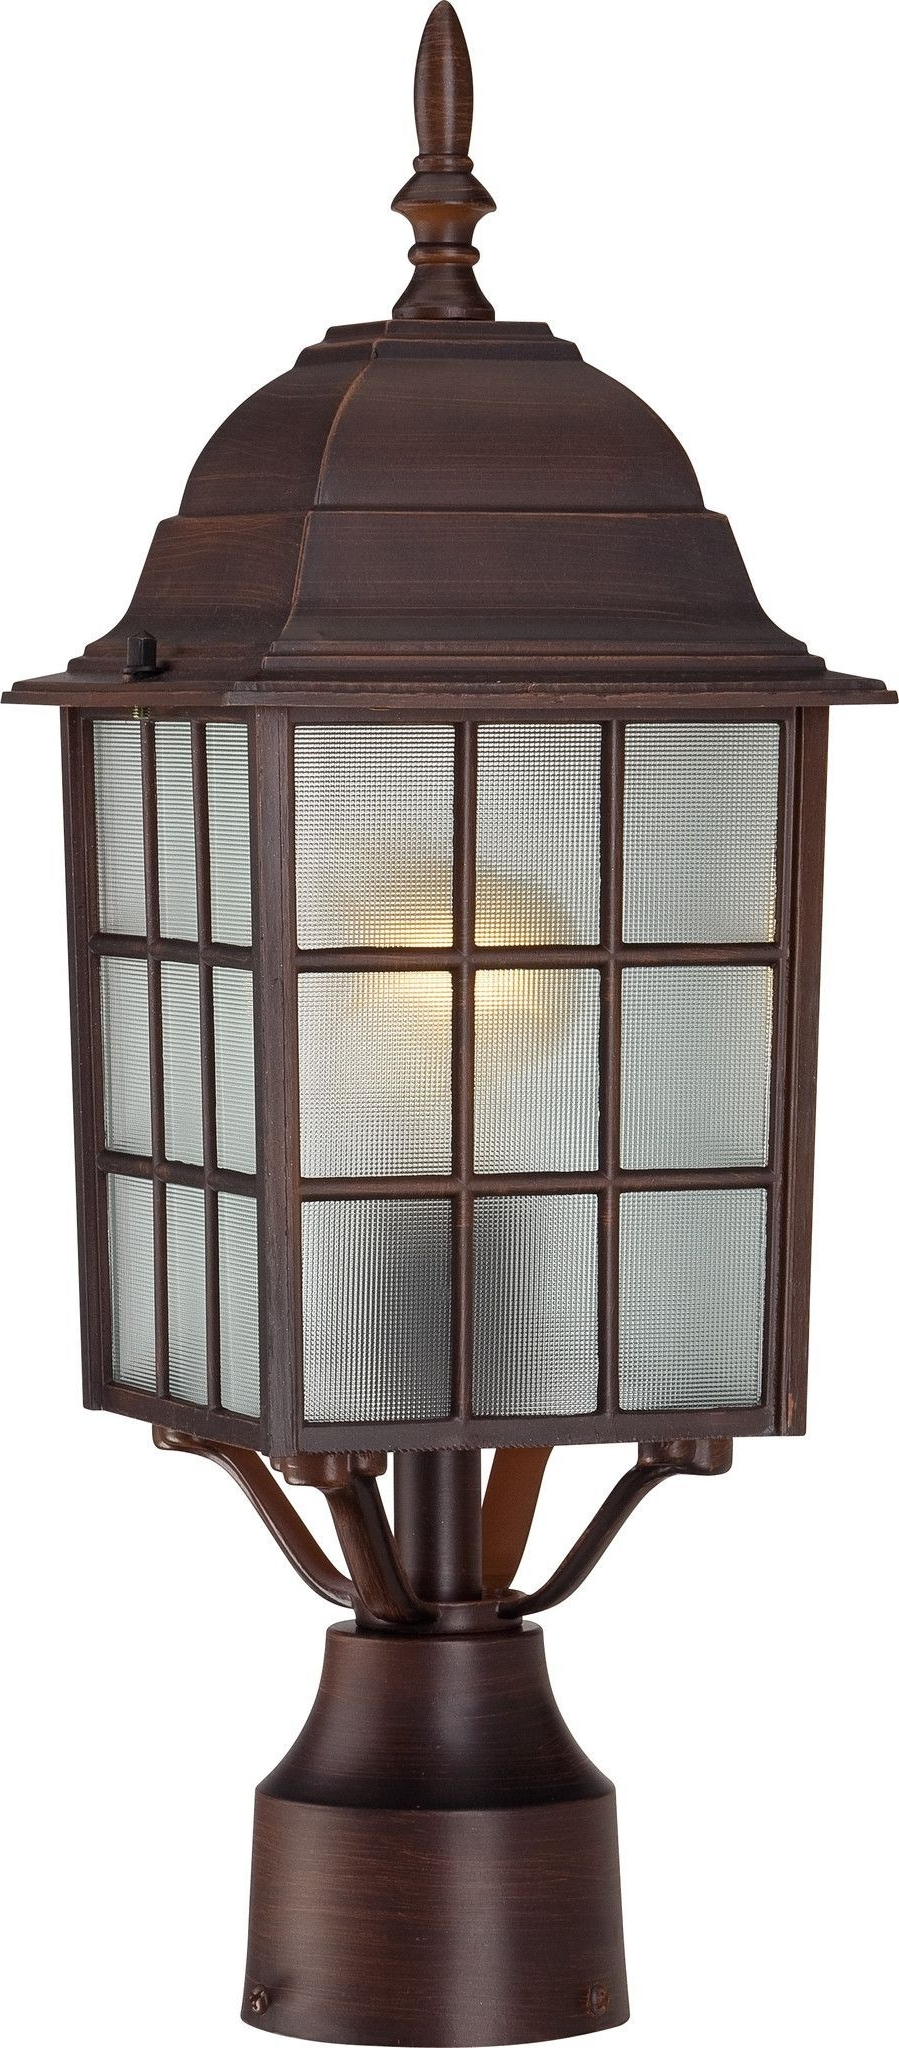 "2018 Outdoor Lamp Lanterns Throughout 17"" Outdoor Lamp Post Lights In Rustic Bronze Finish (View 11 of 20)"